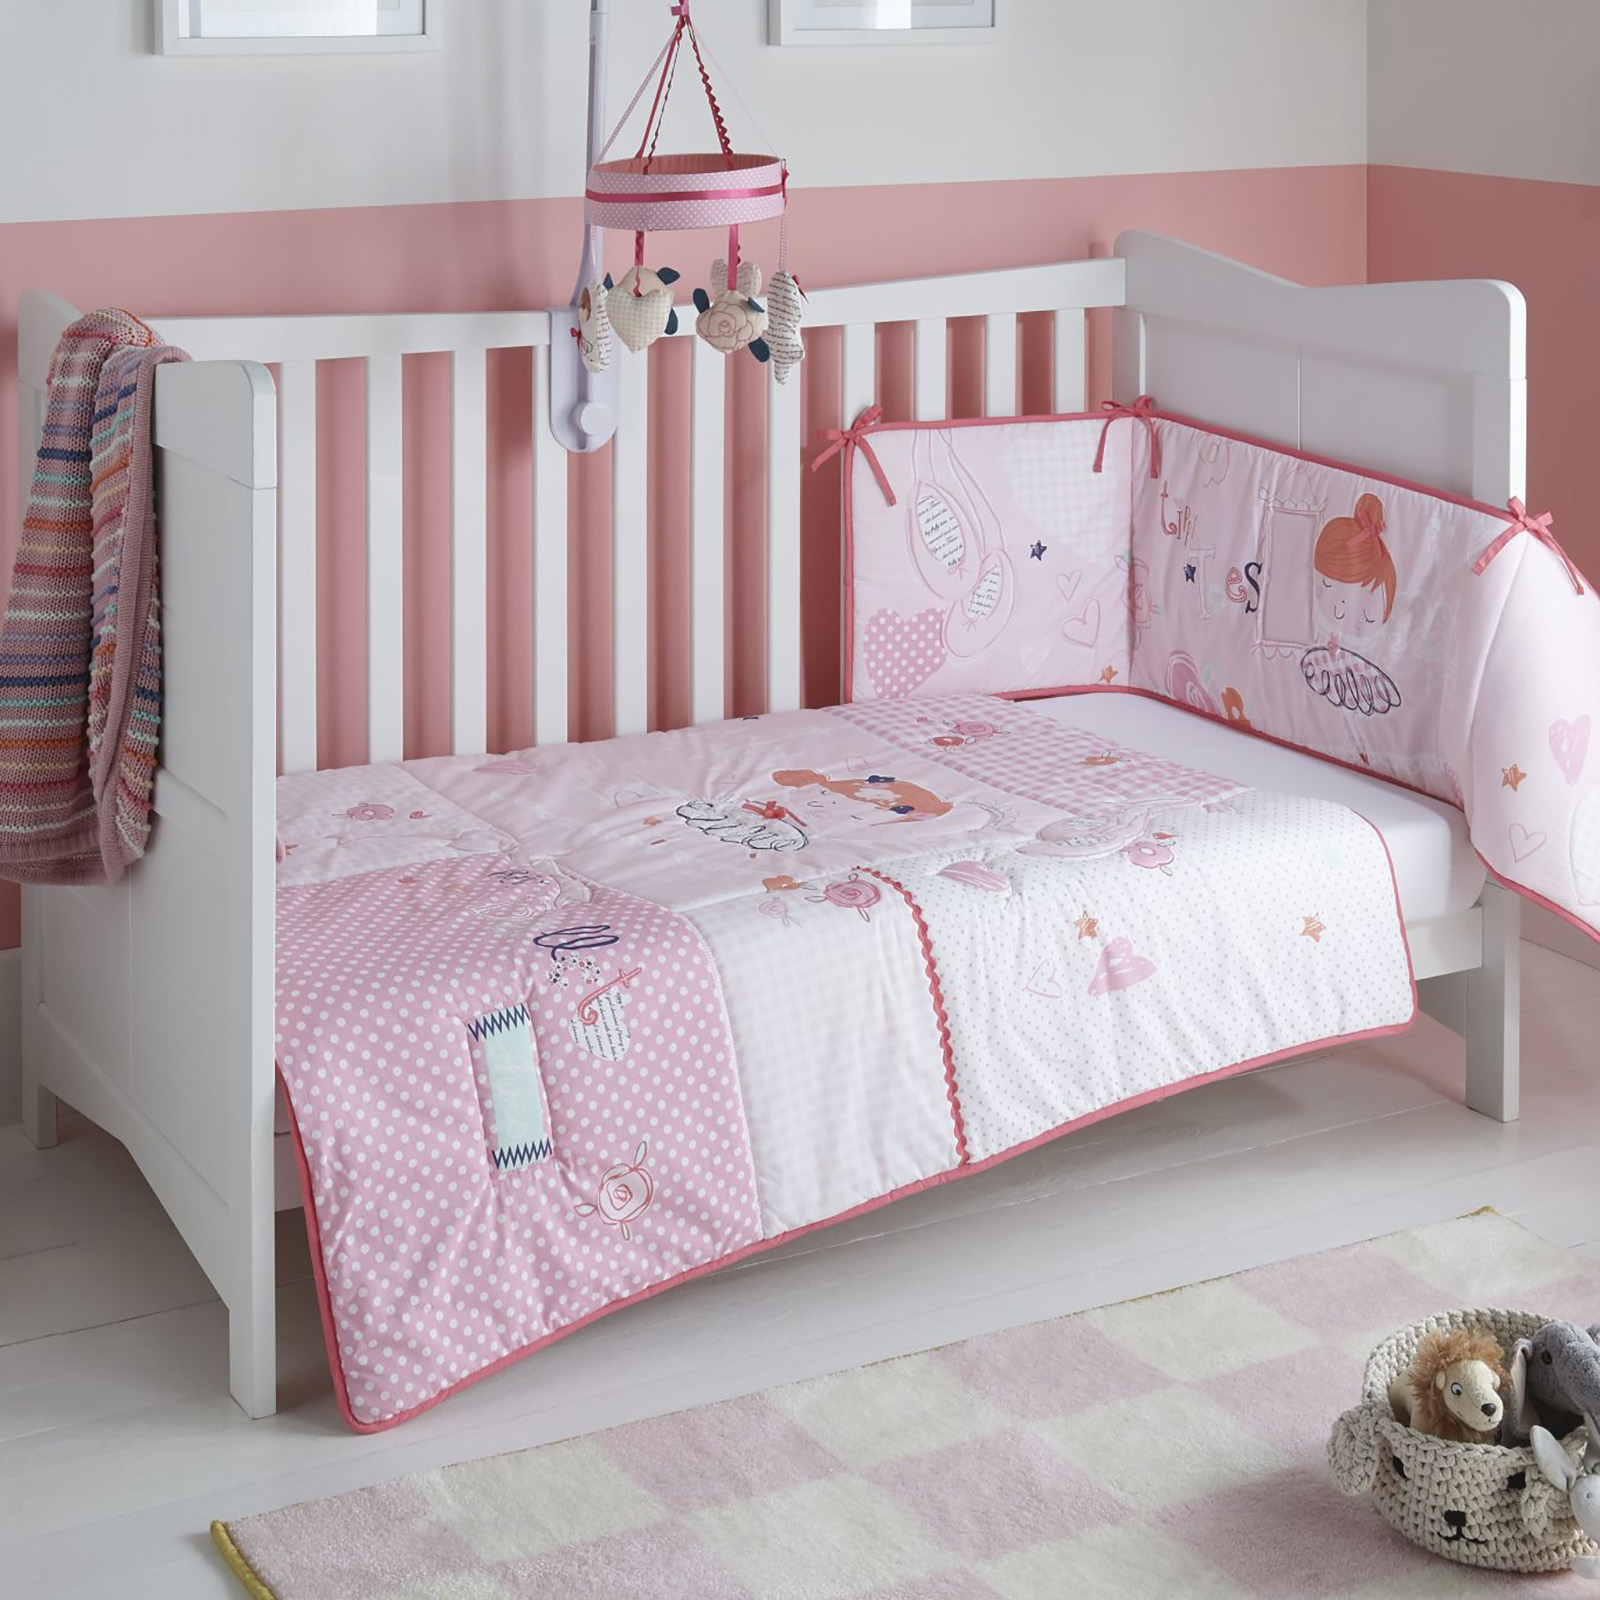 Clair De Lune Cot Cot Bed Quilt Bumper Set Tippy Toes Pink Buy At Online4baby